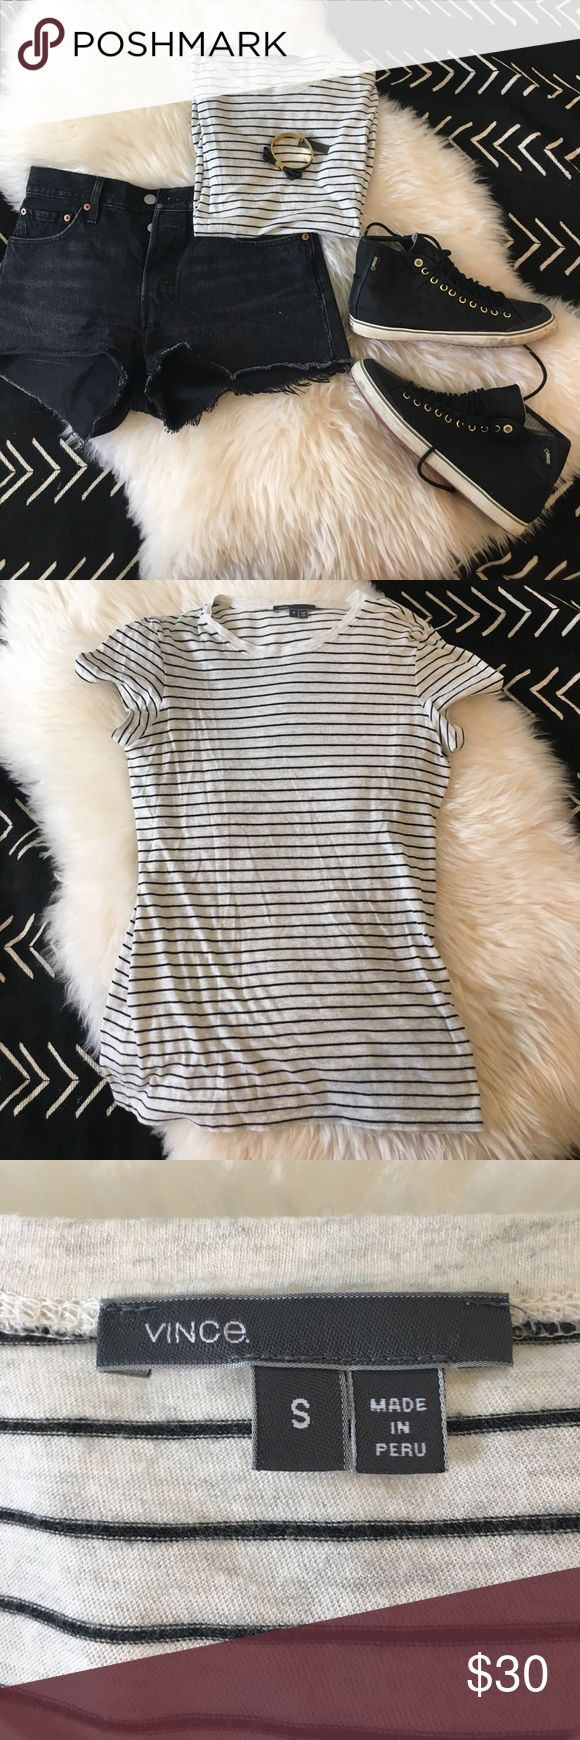 🎊 SALE 🎊 Vince striped tee Cream and black striped tee. Pictured with Levi's 501 shorts, Tretorn GORTEX high tops and NWT Vince Camuto black bow bracelet. Vince Tops Tees - Short Sleeve